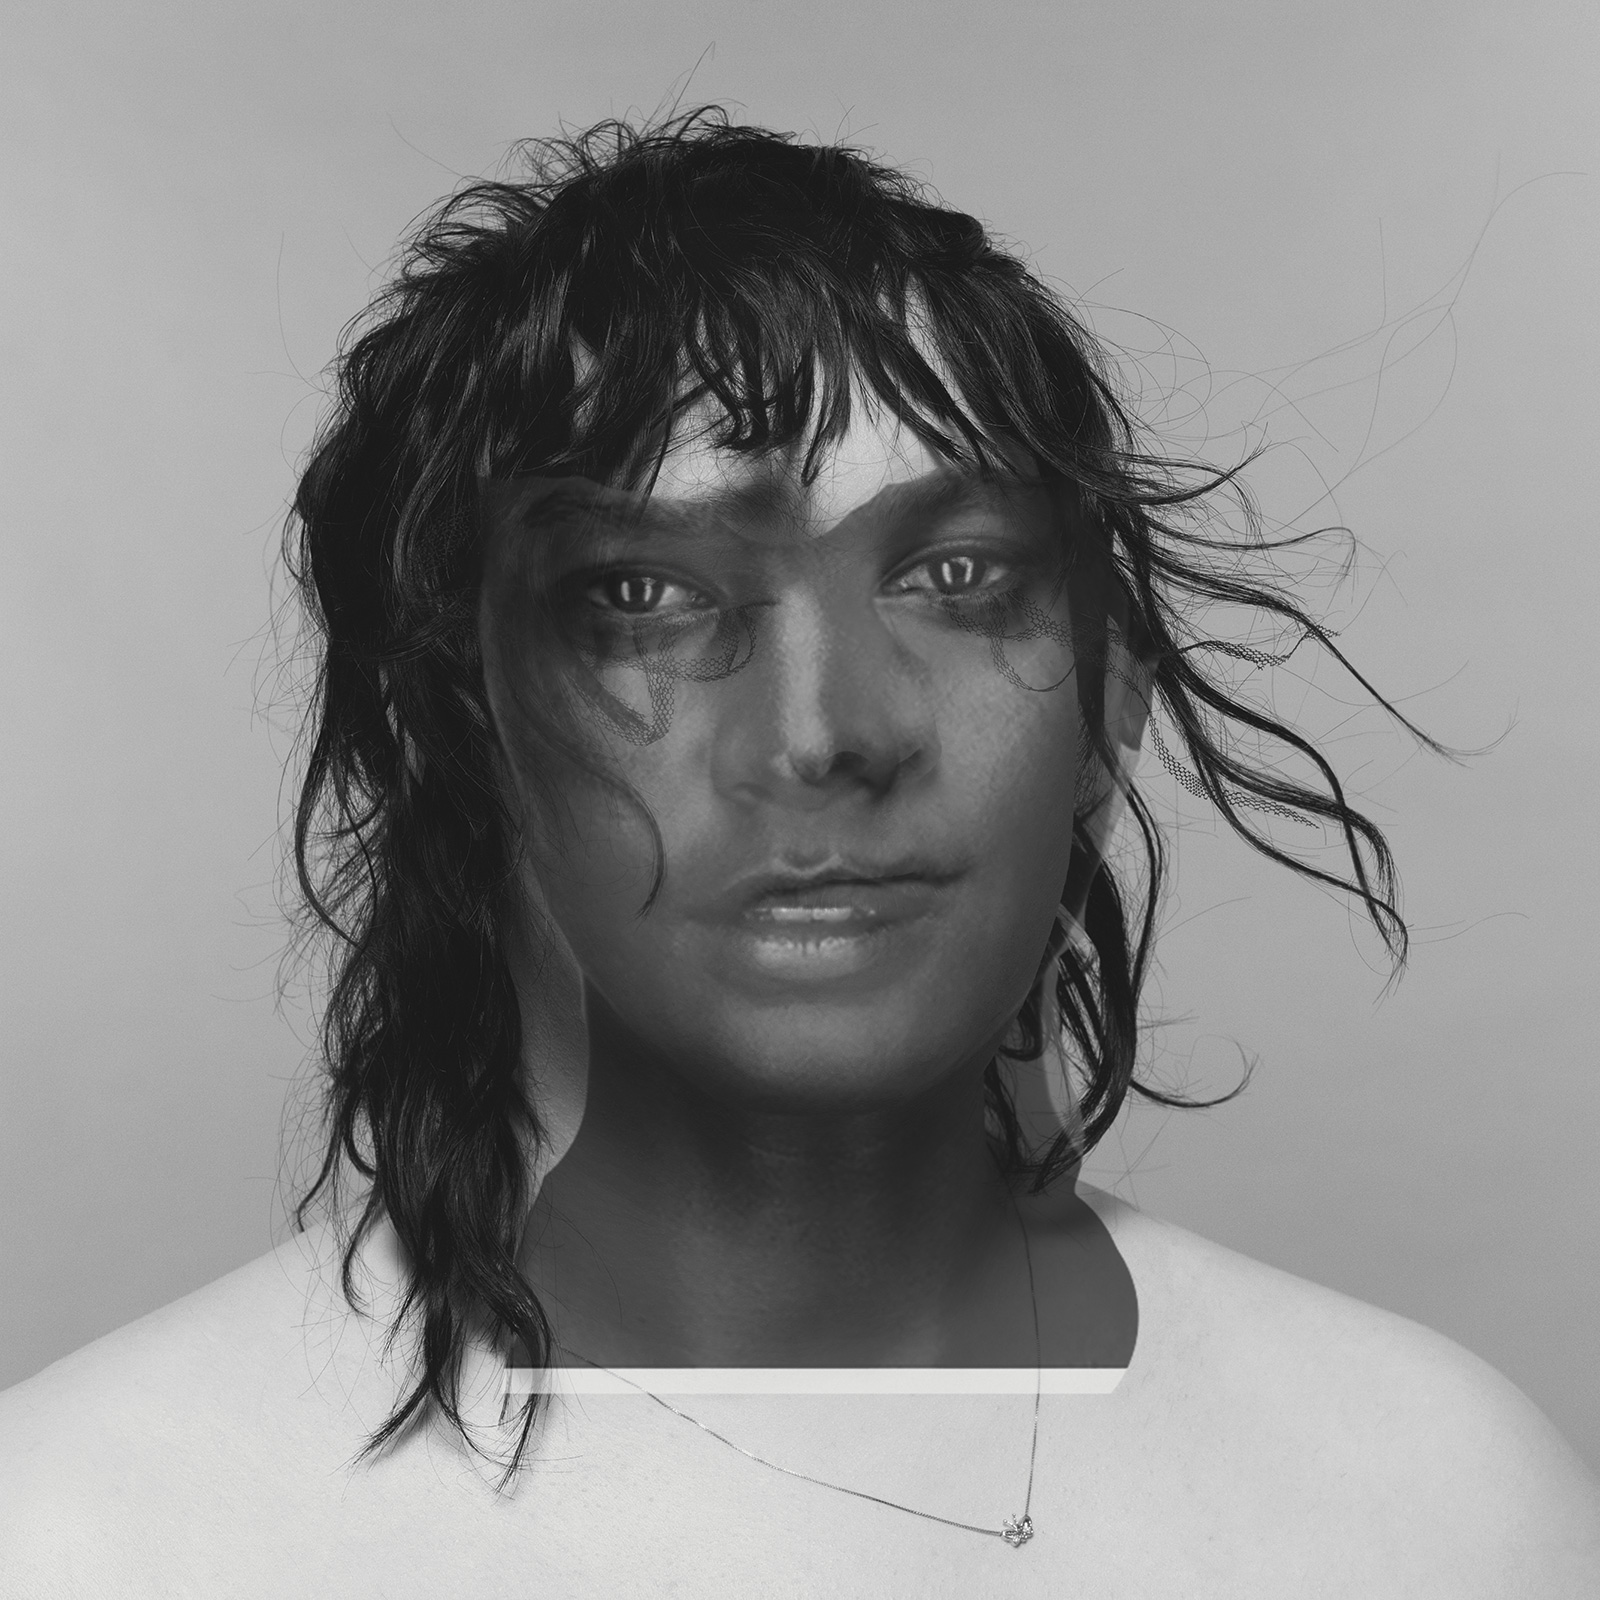 ANOHNI unveils reflective video for 'Paradise' - watch